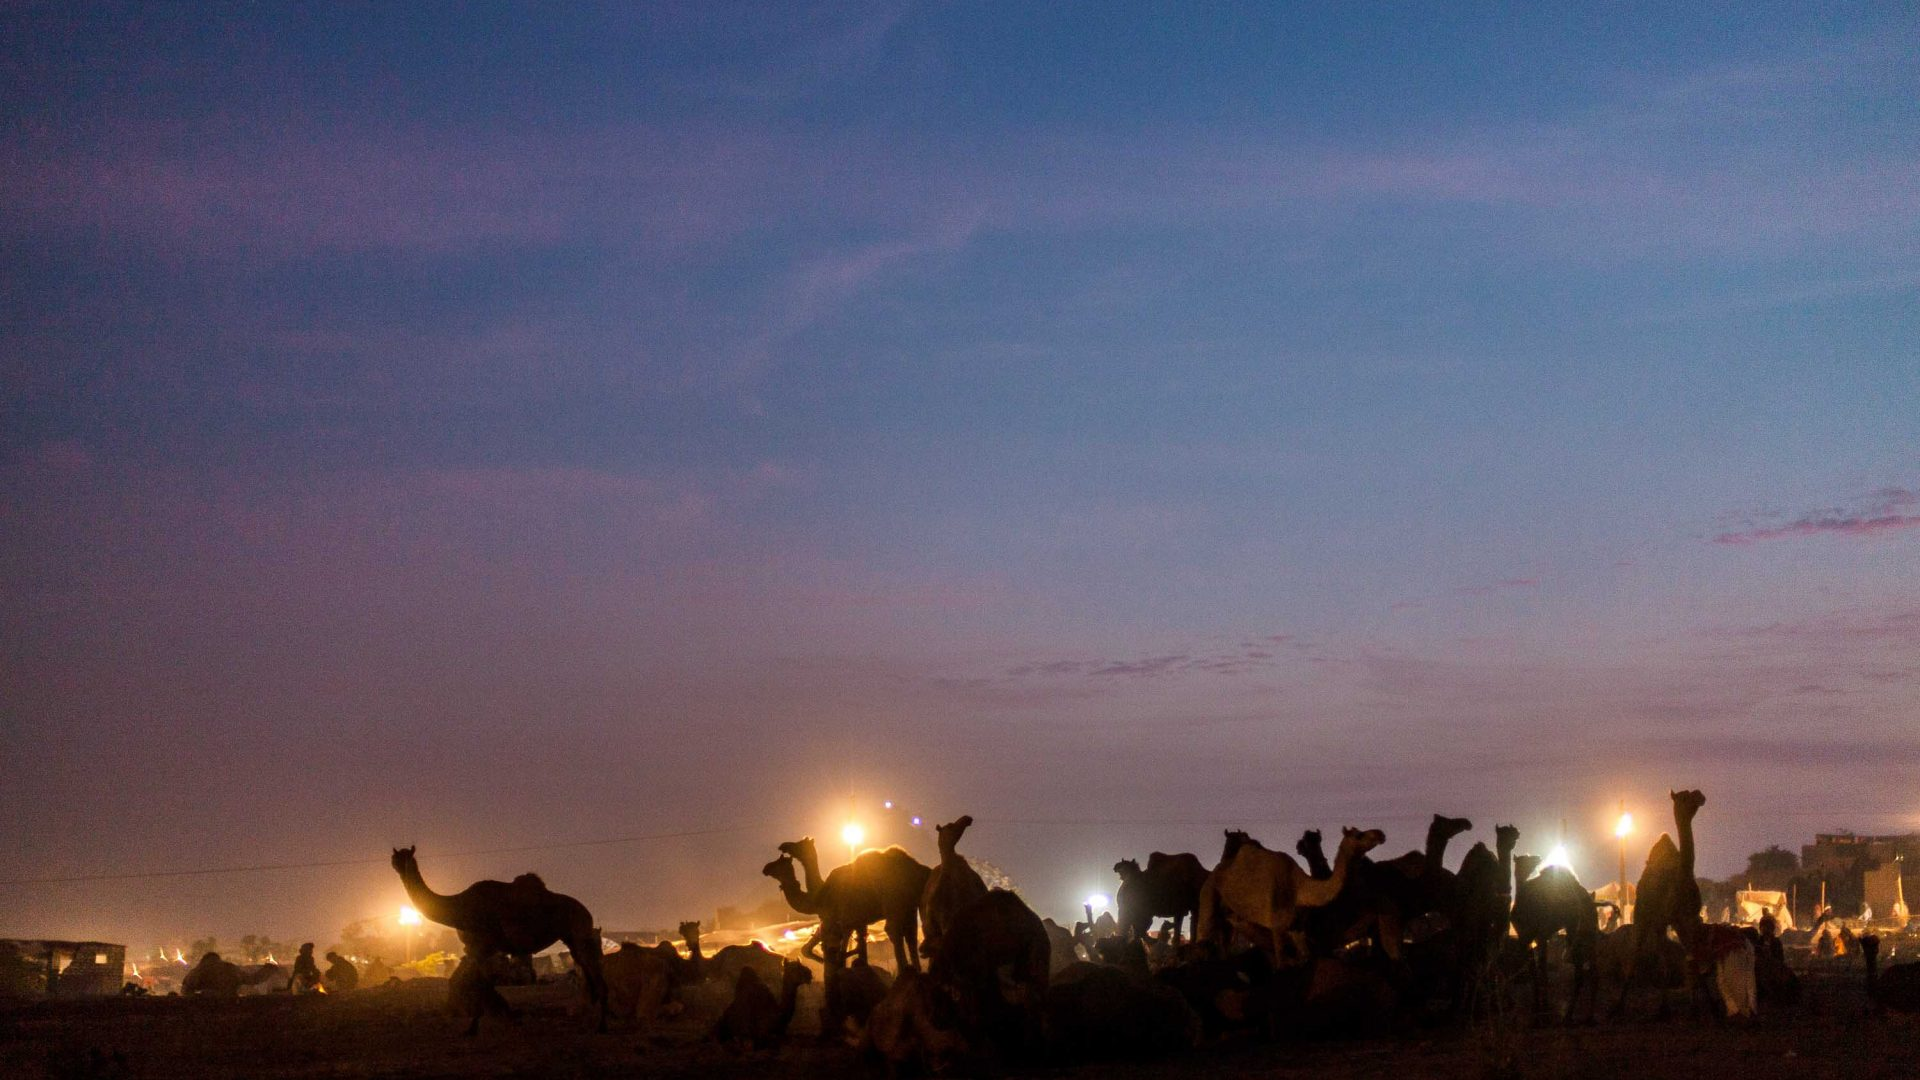 Camels at dawn on the photographer's final day of Pushkar Camel Fair.